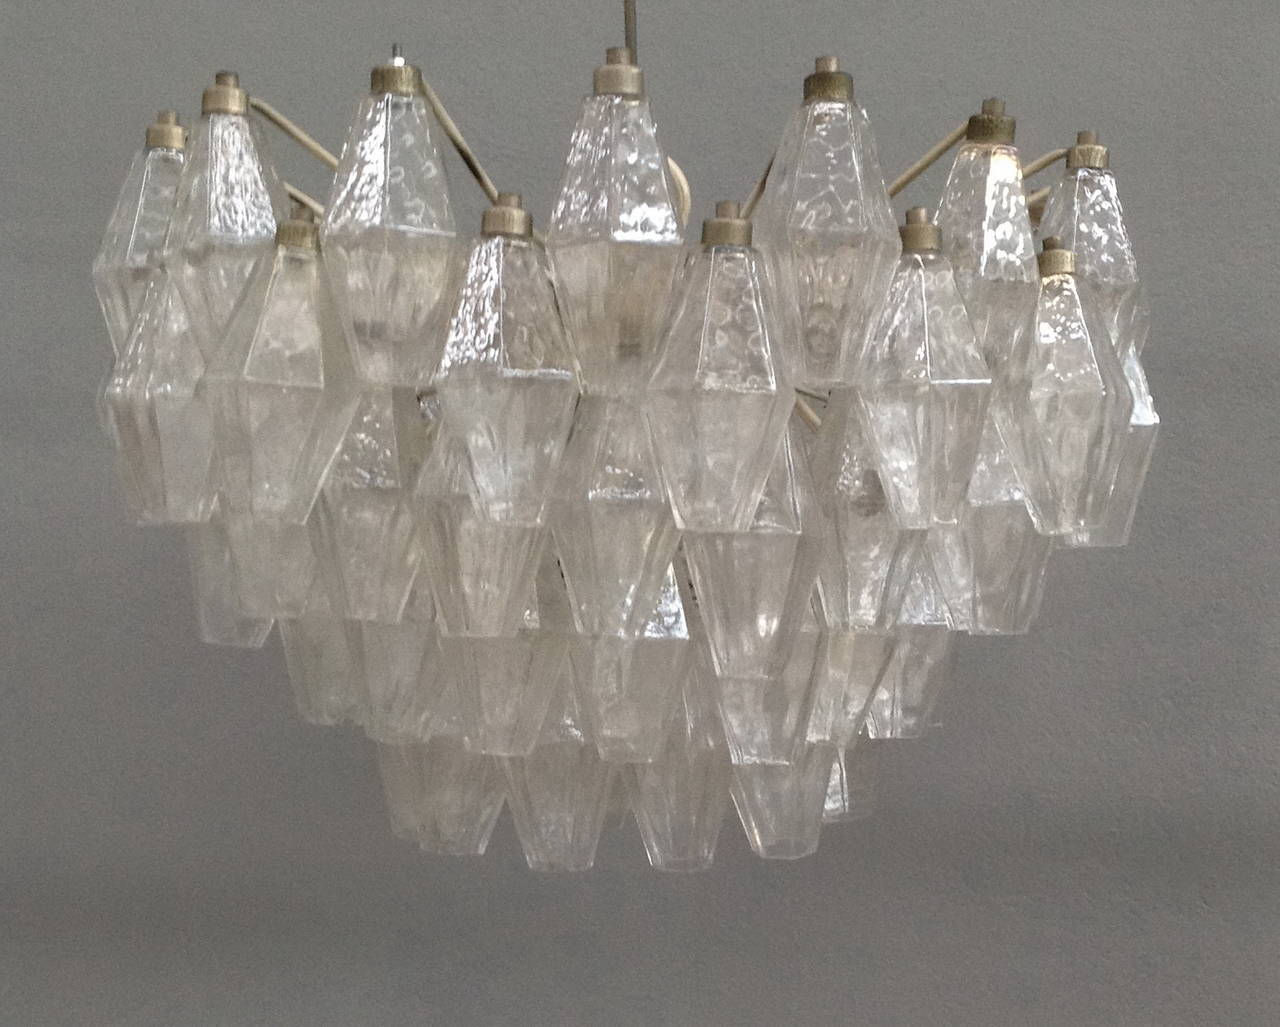 Murano polyhedral glasses chandelier attributed to carlo scarpa for murano glass chandelier with eight lights five tiers glasses are all clear aloadofball Images